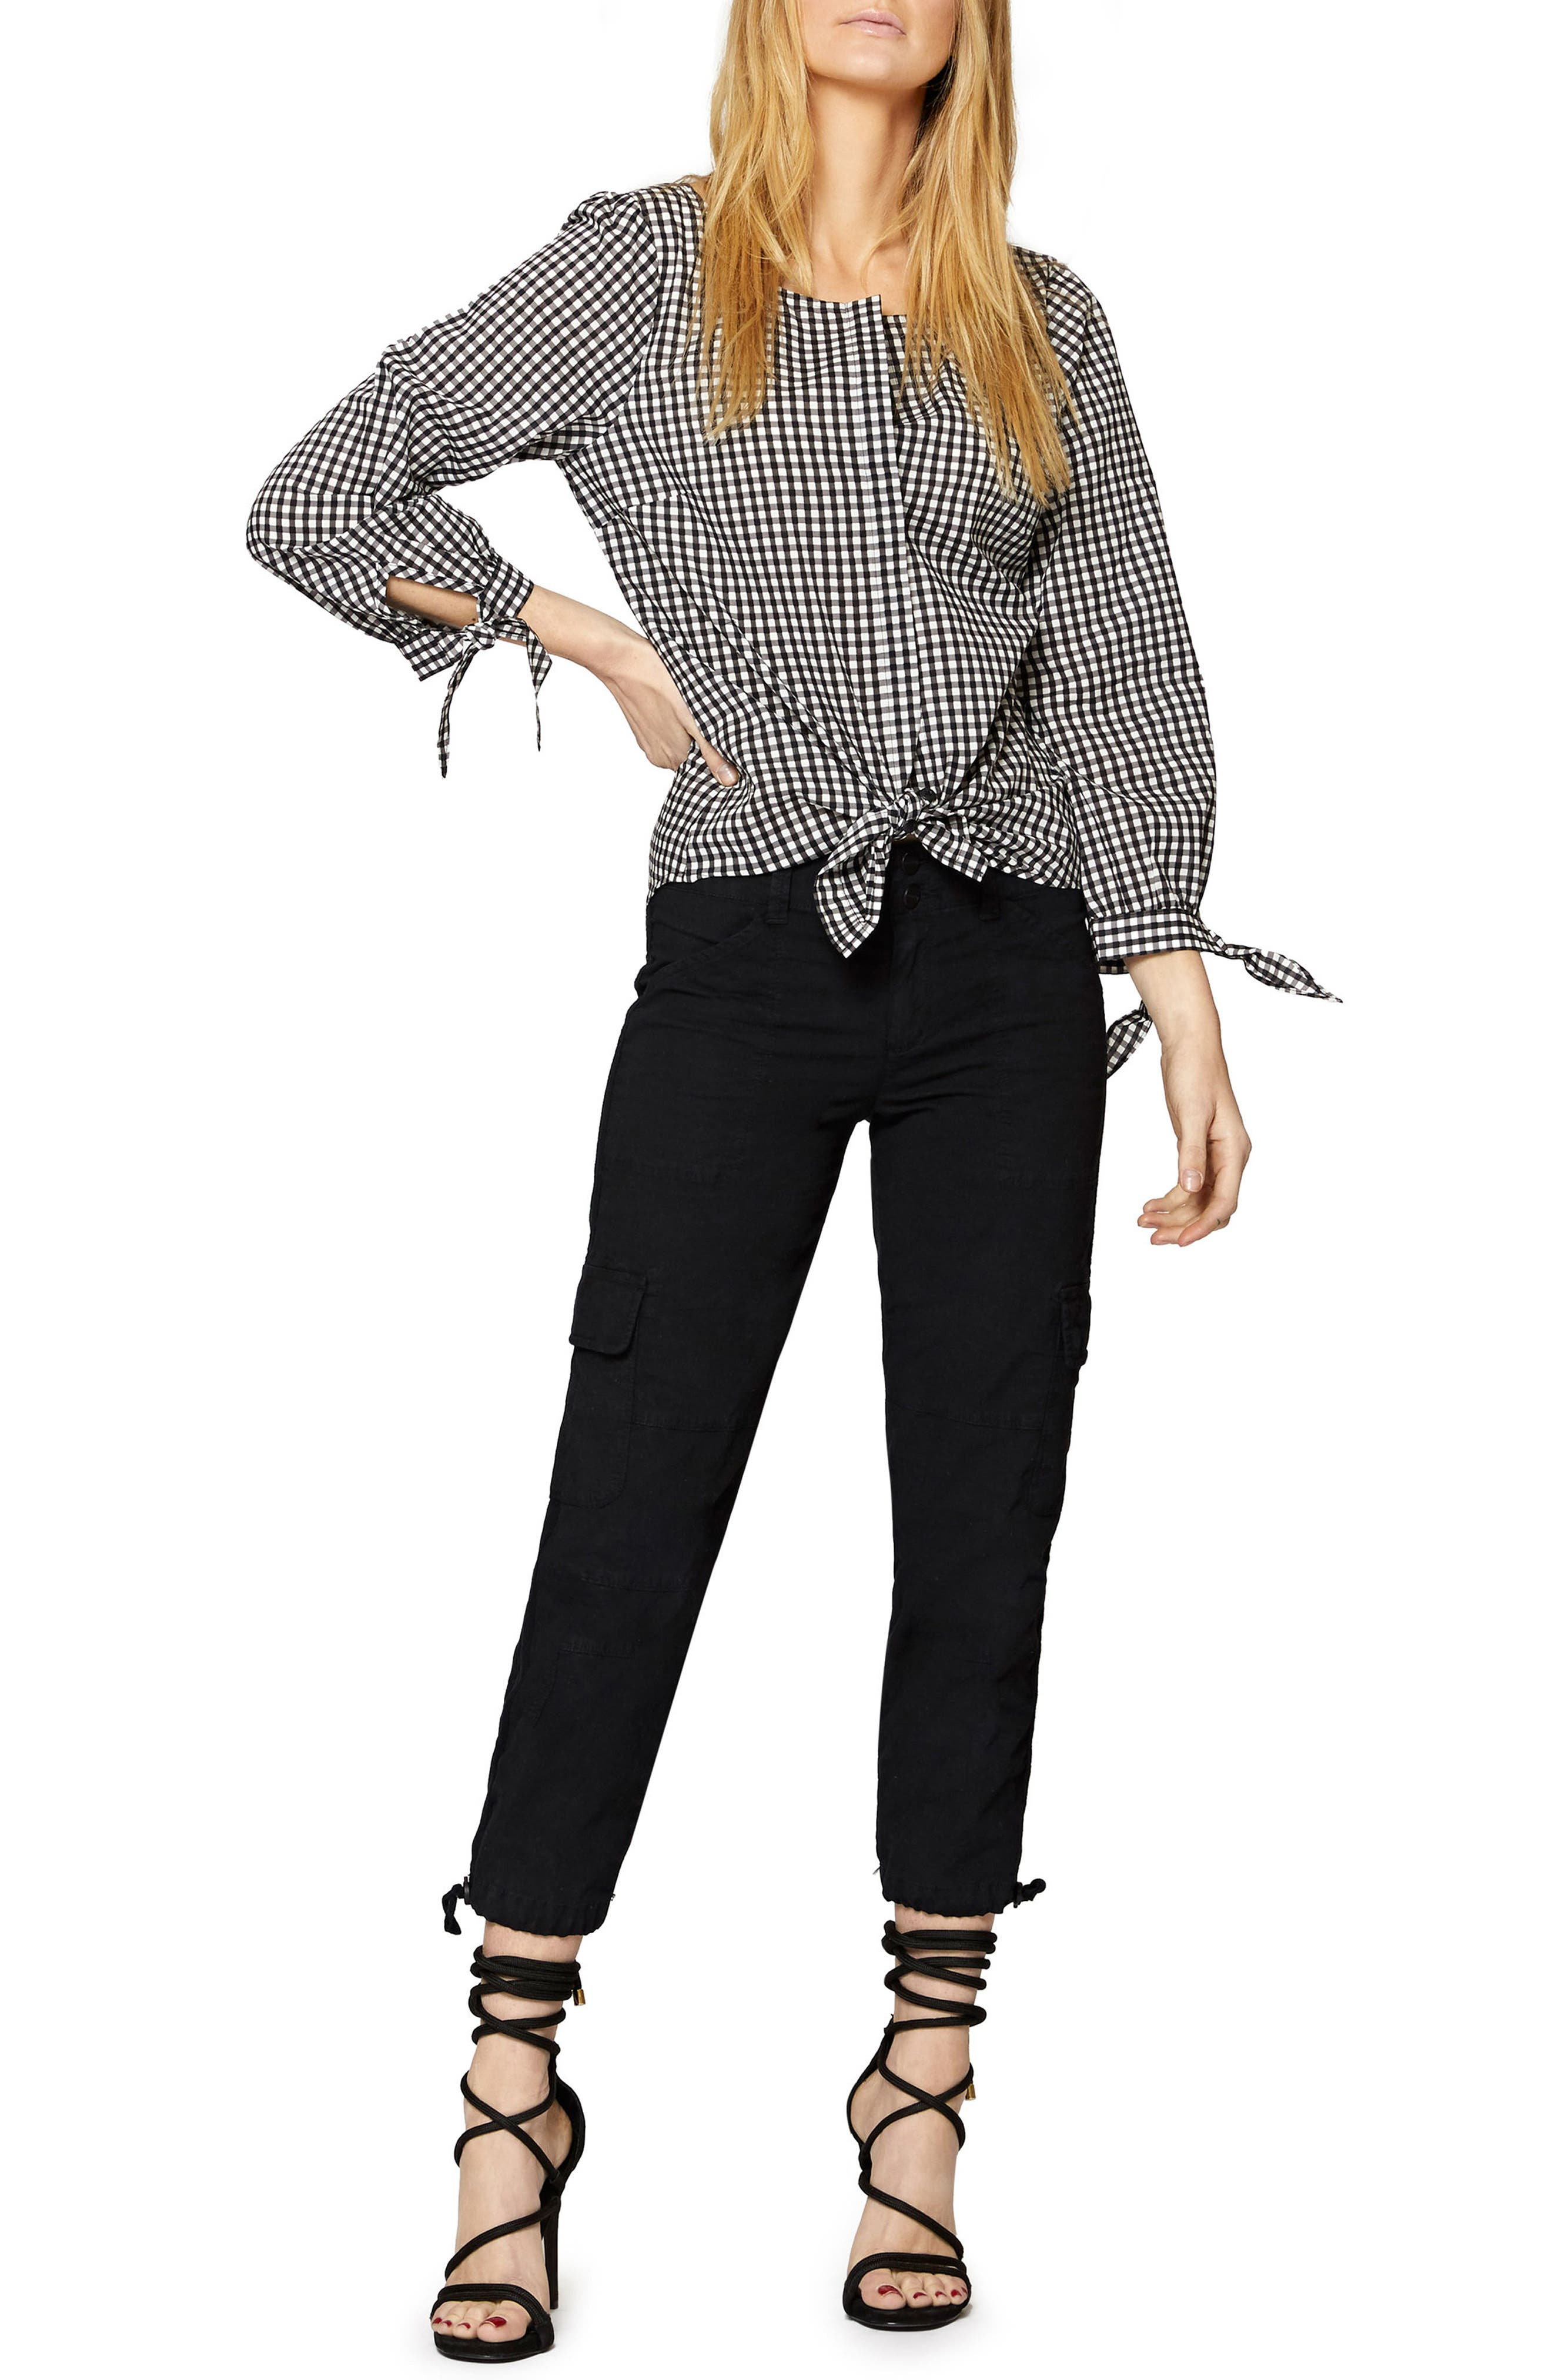 Madie Tie Sleeve Blouse,                             Alternate thumbnail 3, color,                             Bistro Check